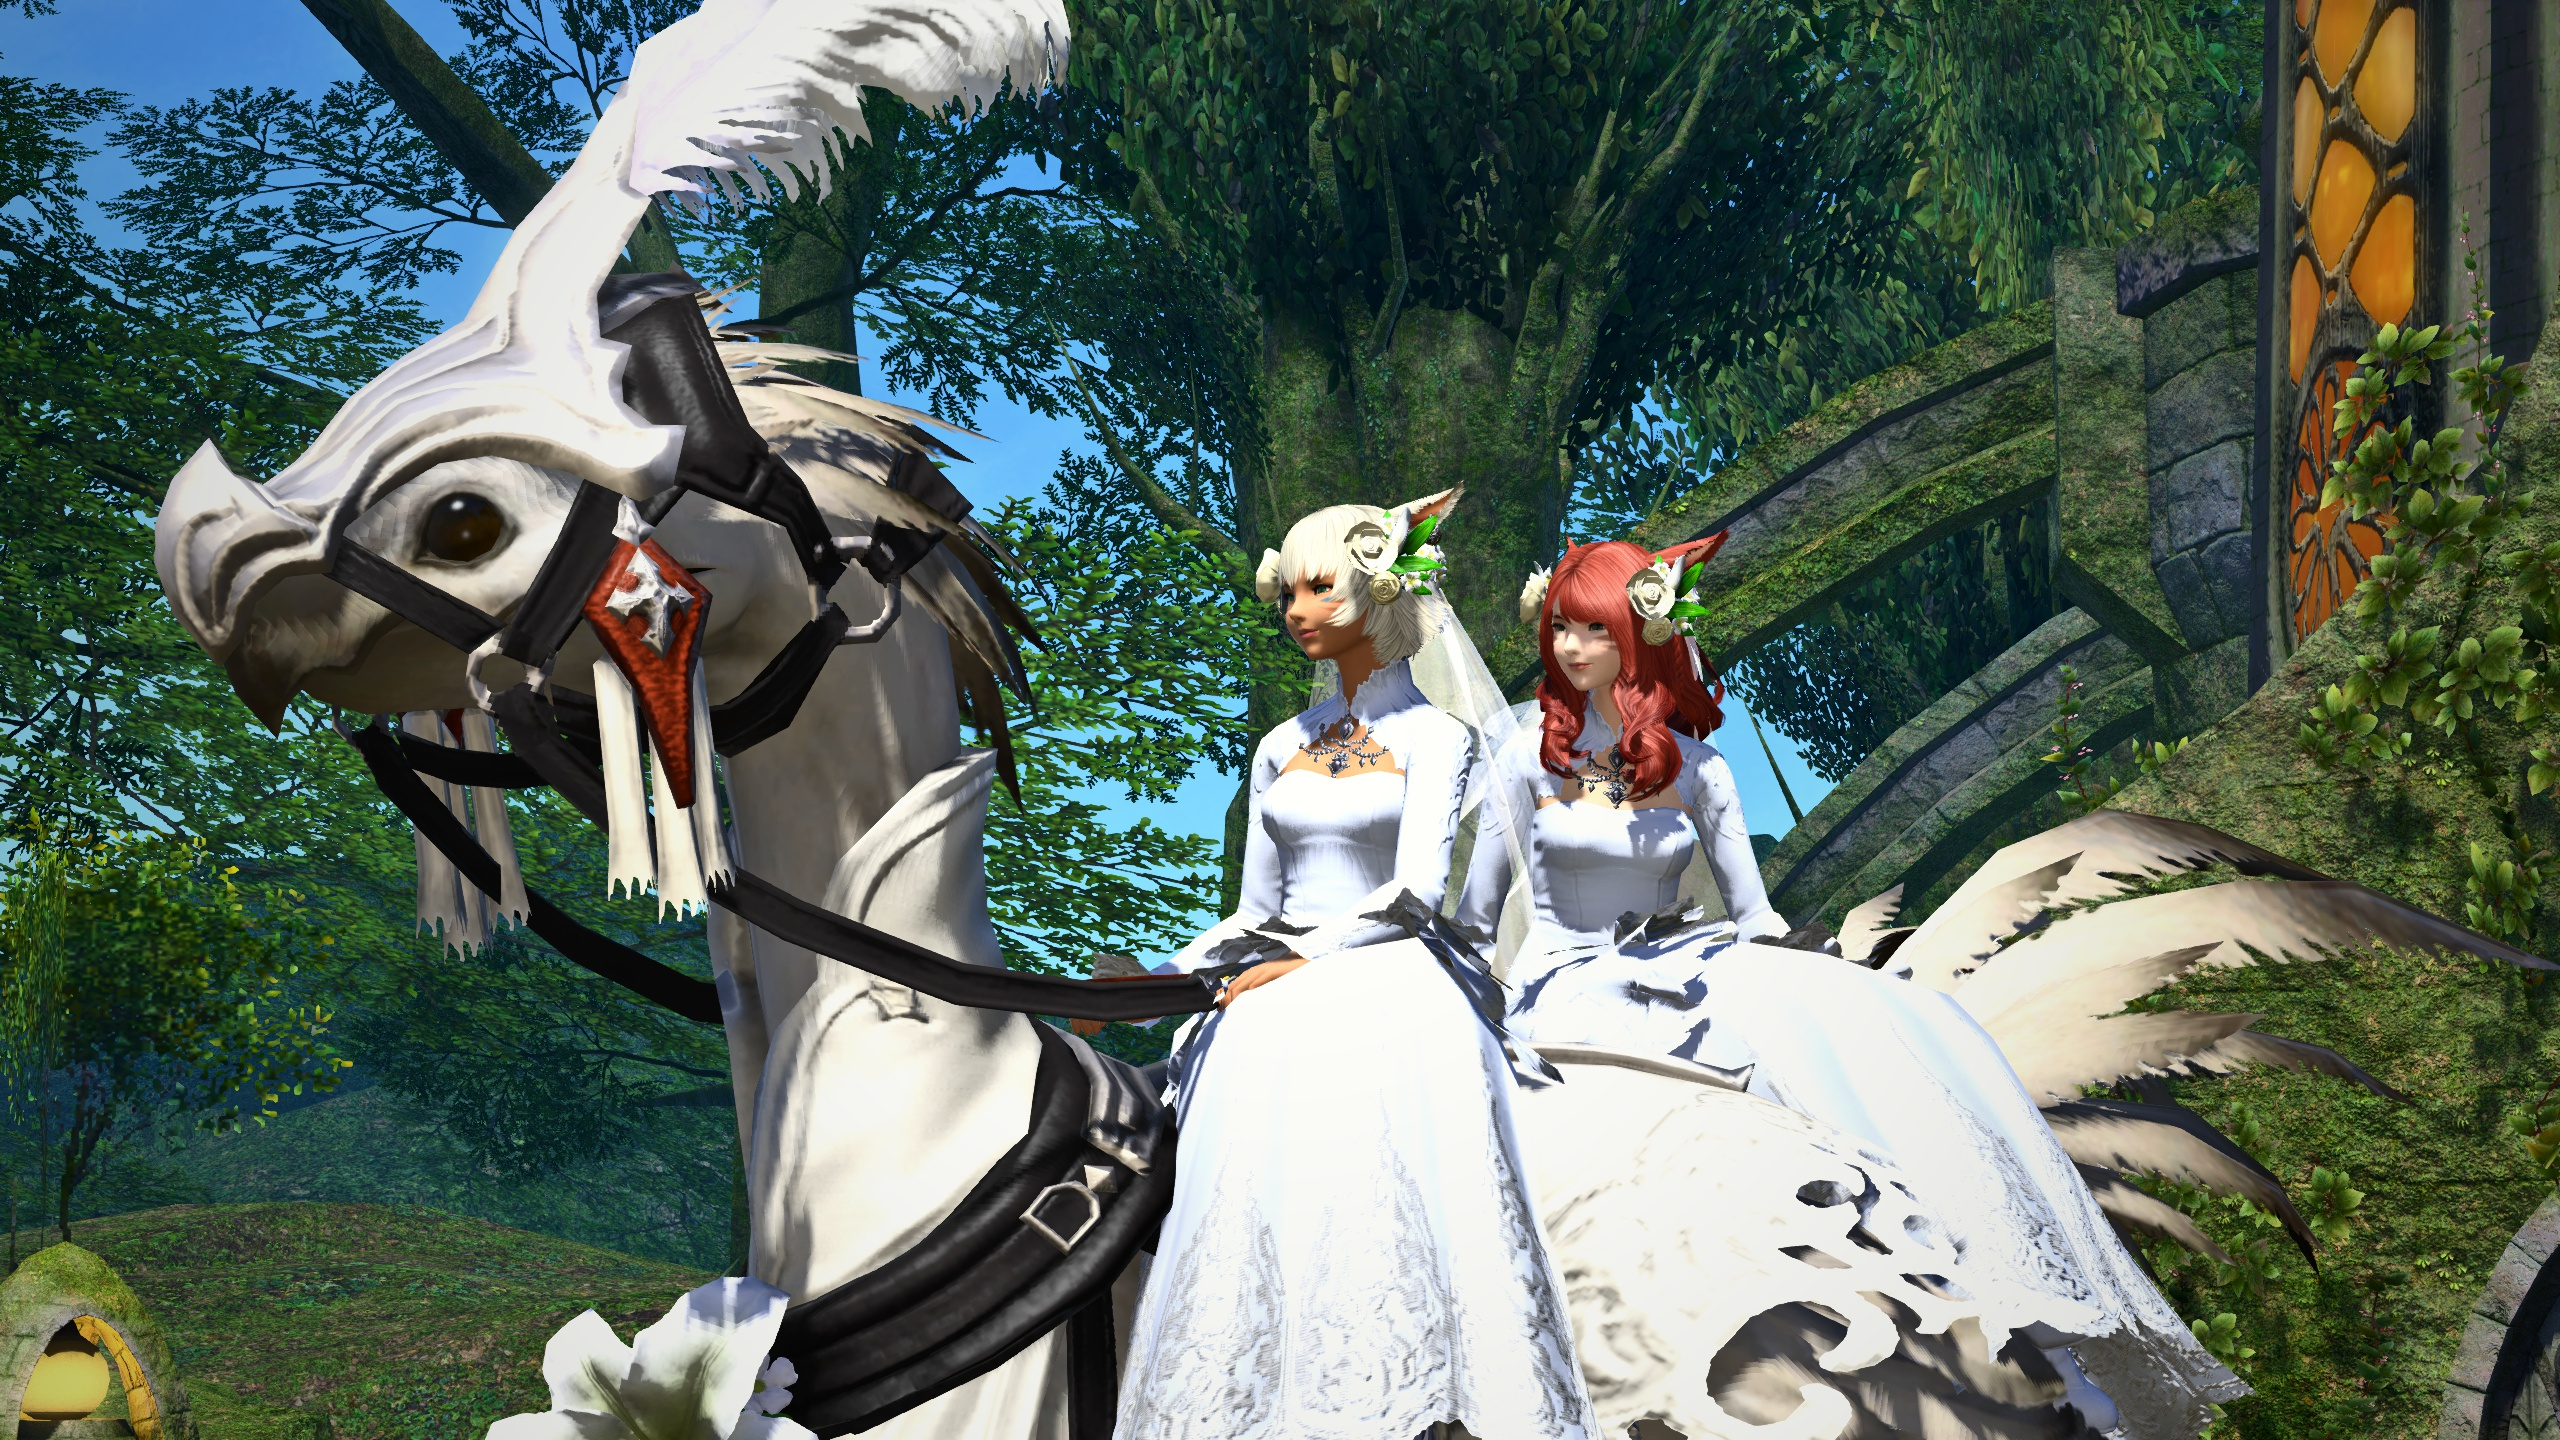 FINAL FANTASY XIV Online - Advanced Players Guide + Unlocking Features + Side Quest Tips - The Ceremony of Eternal Bonding - E511EF2